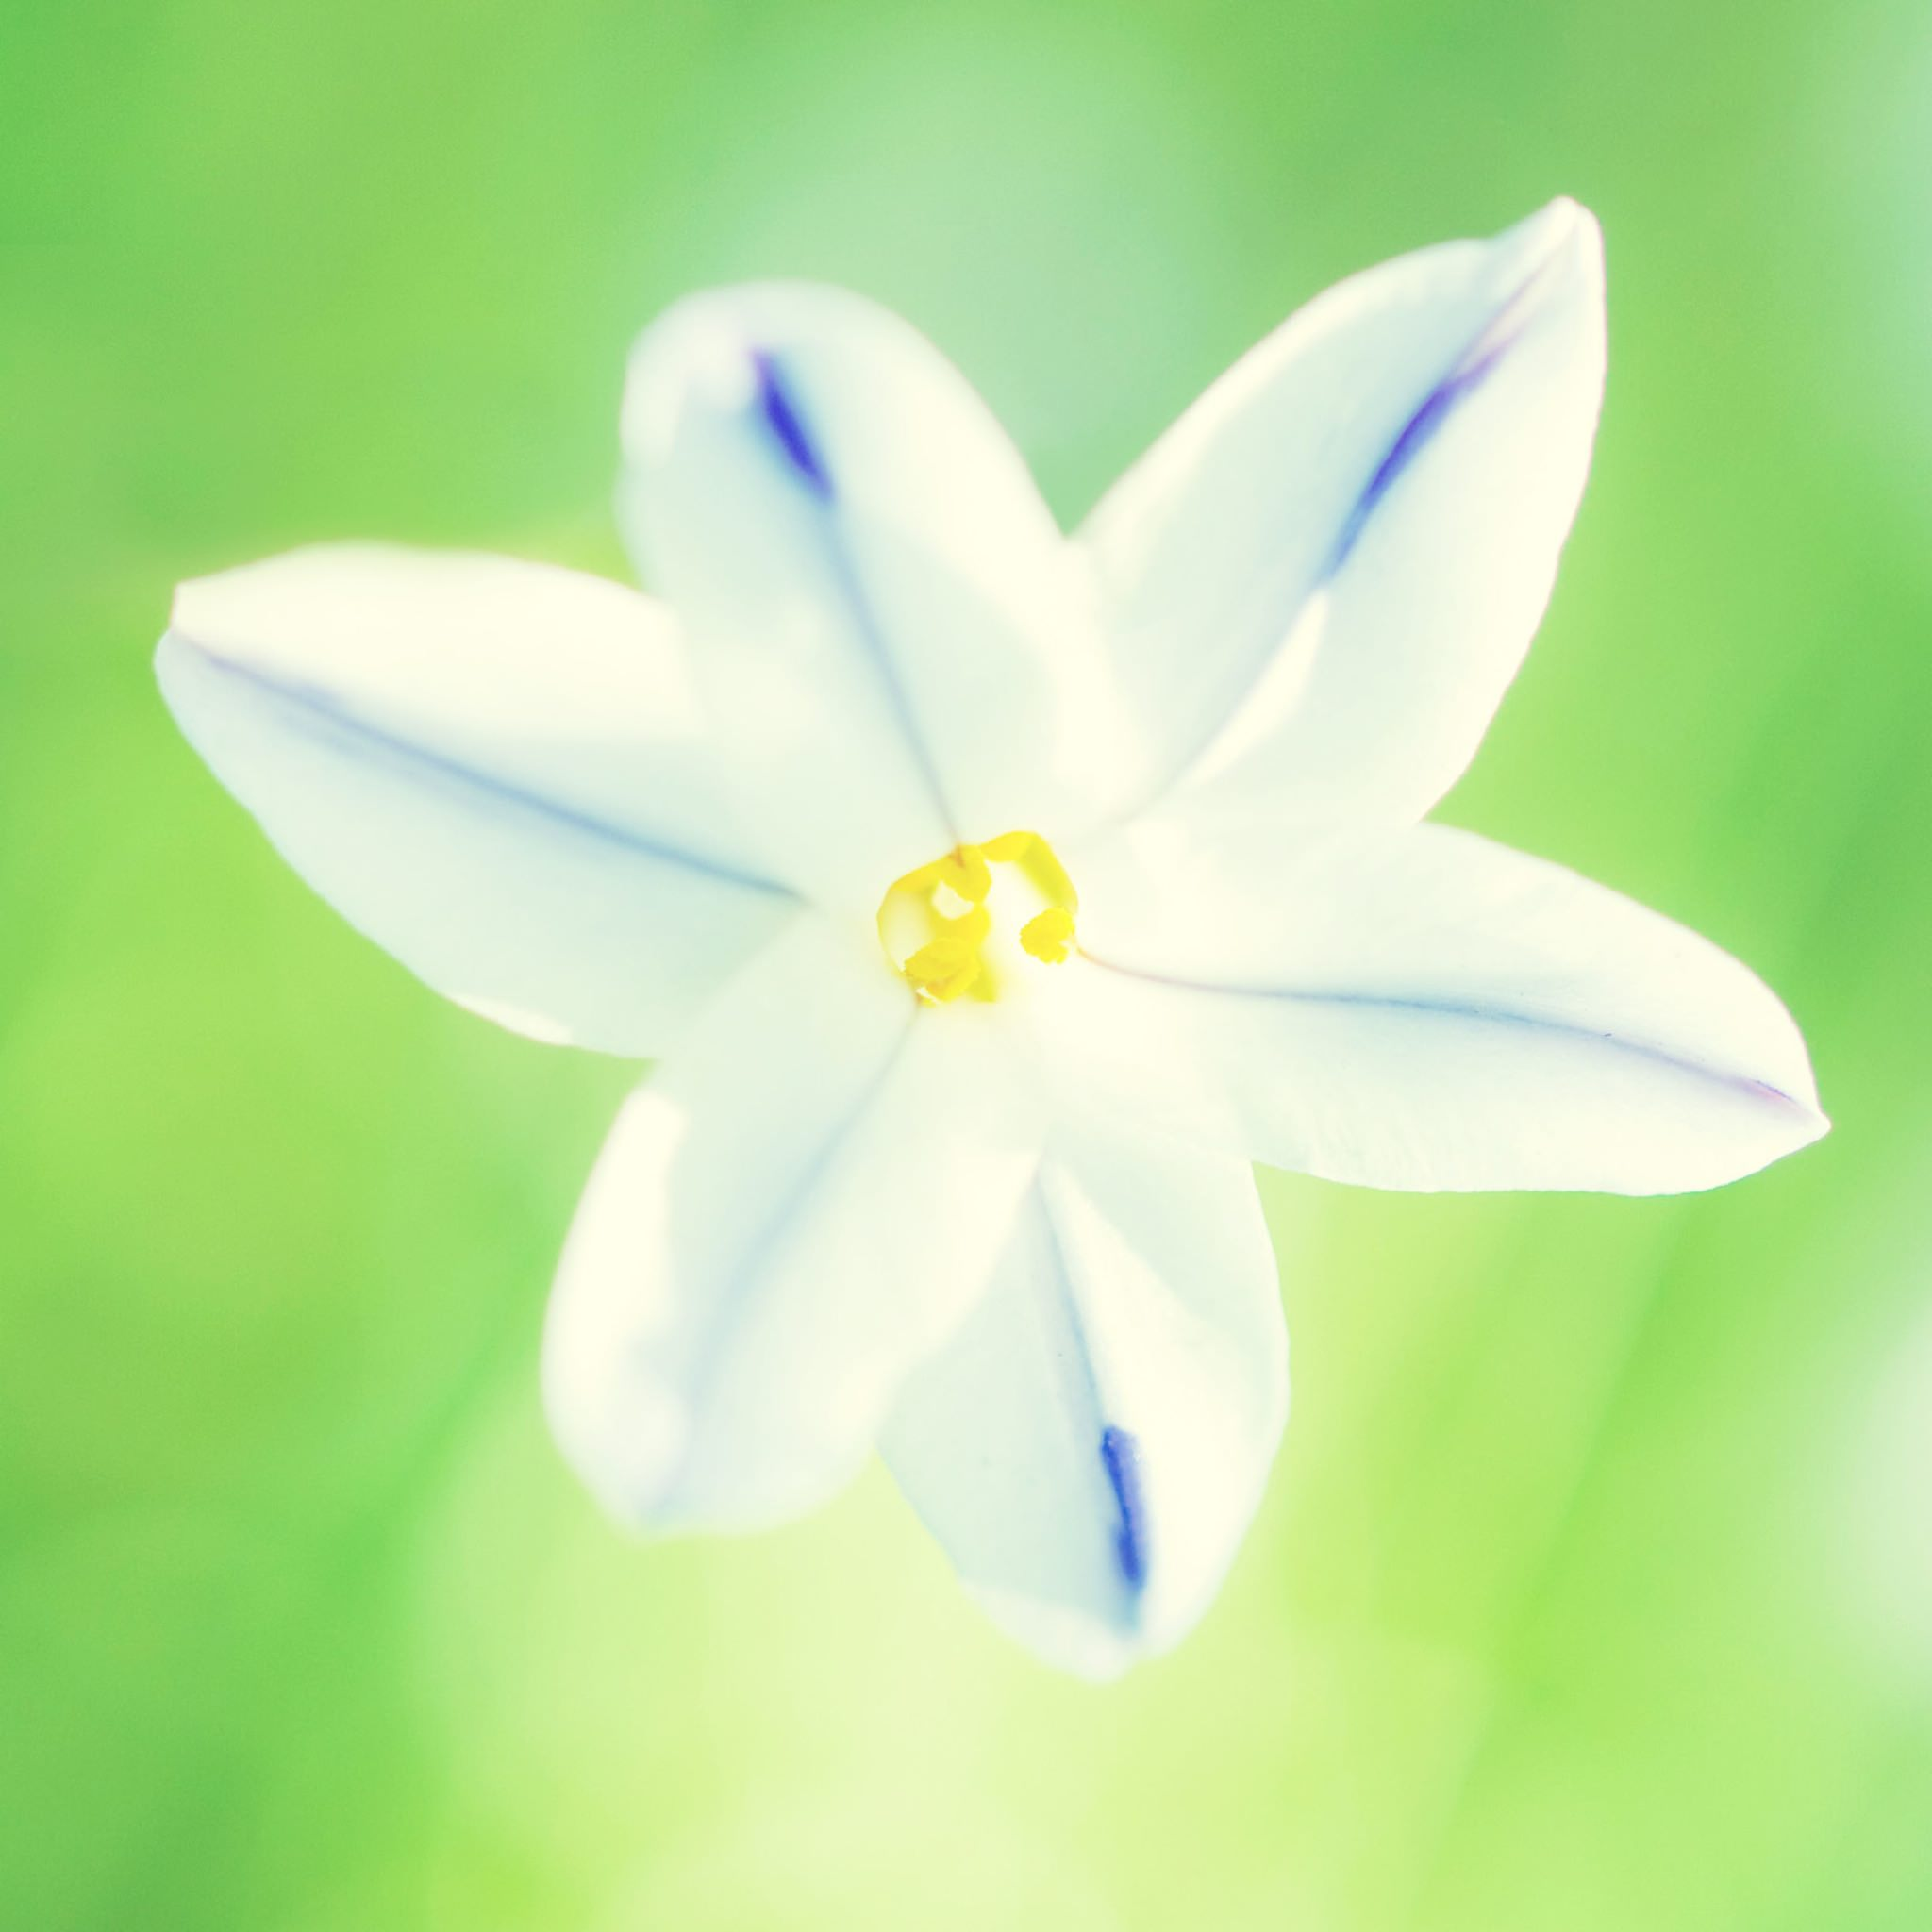 iPad iPad mini wallpaper